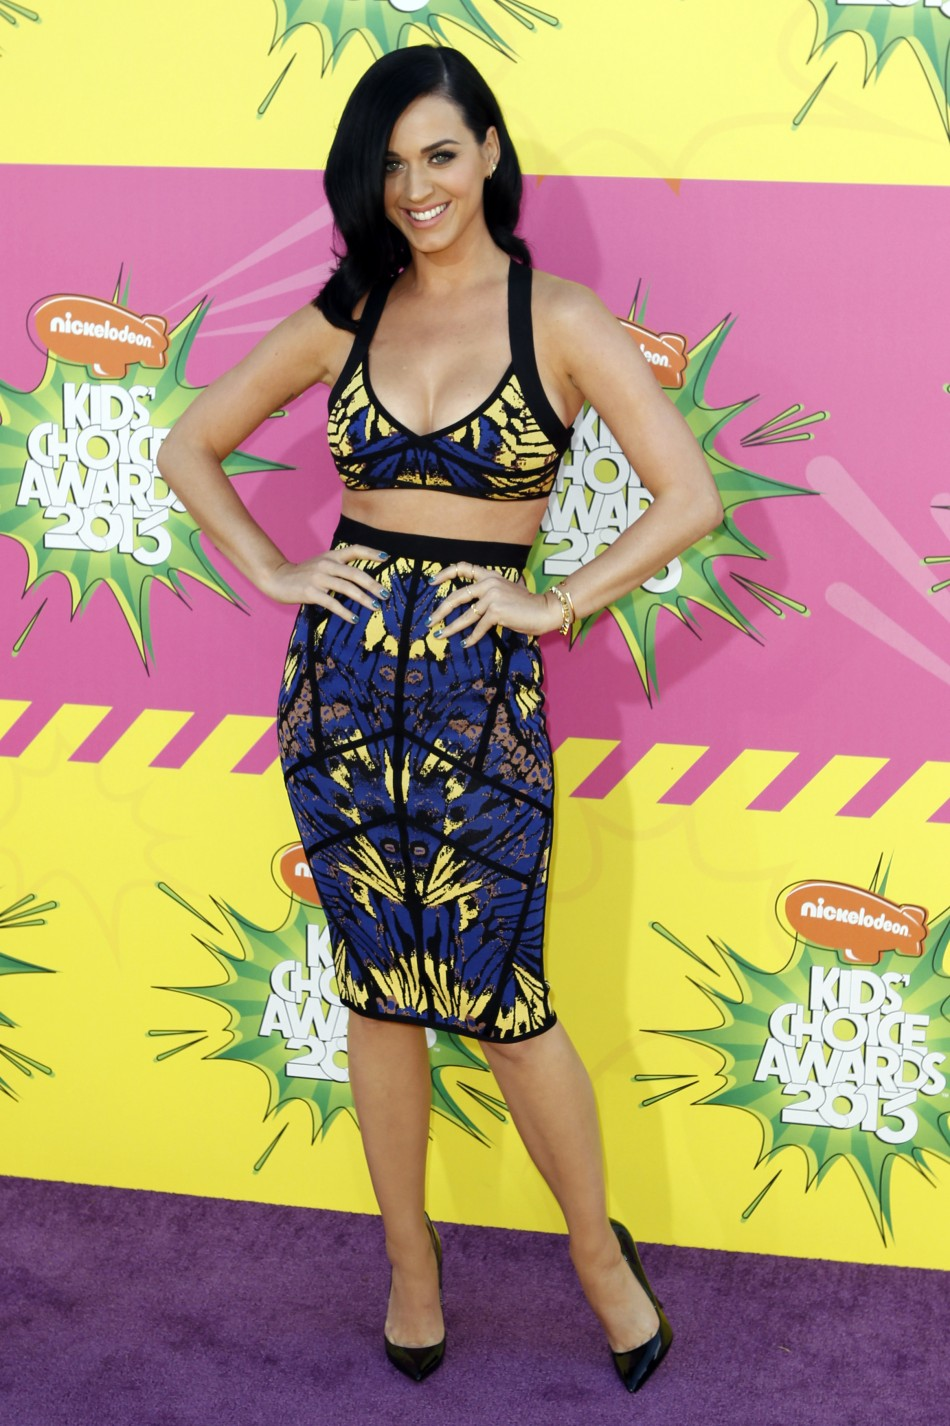 Singer Katy Perry arrives at the 2013 Kids Choice Awards